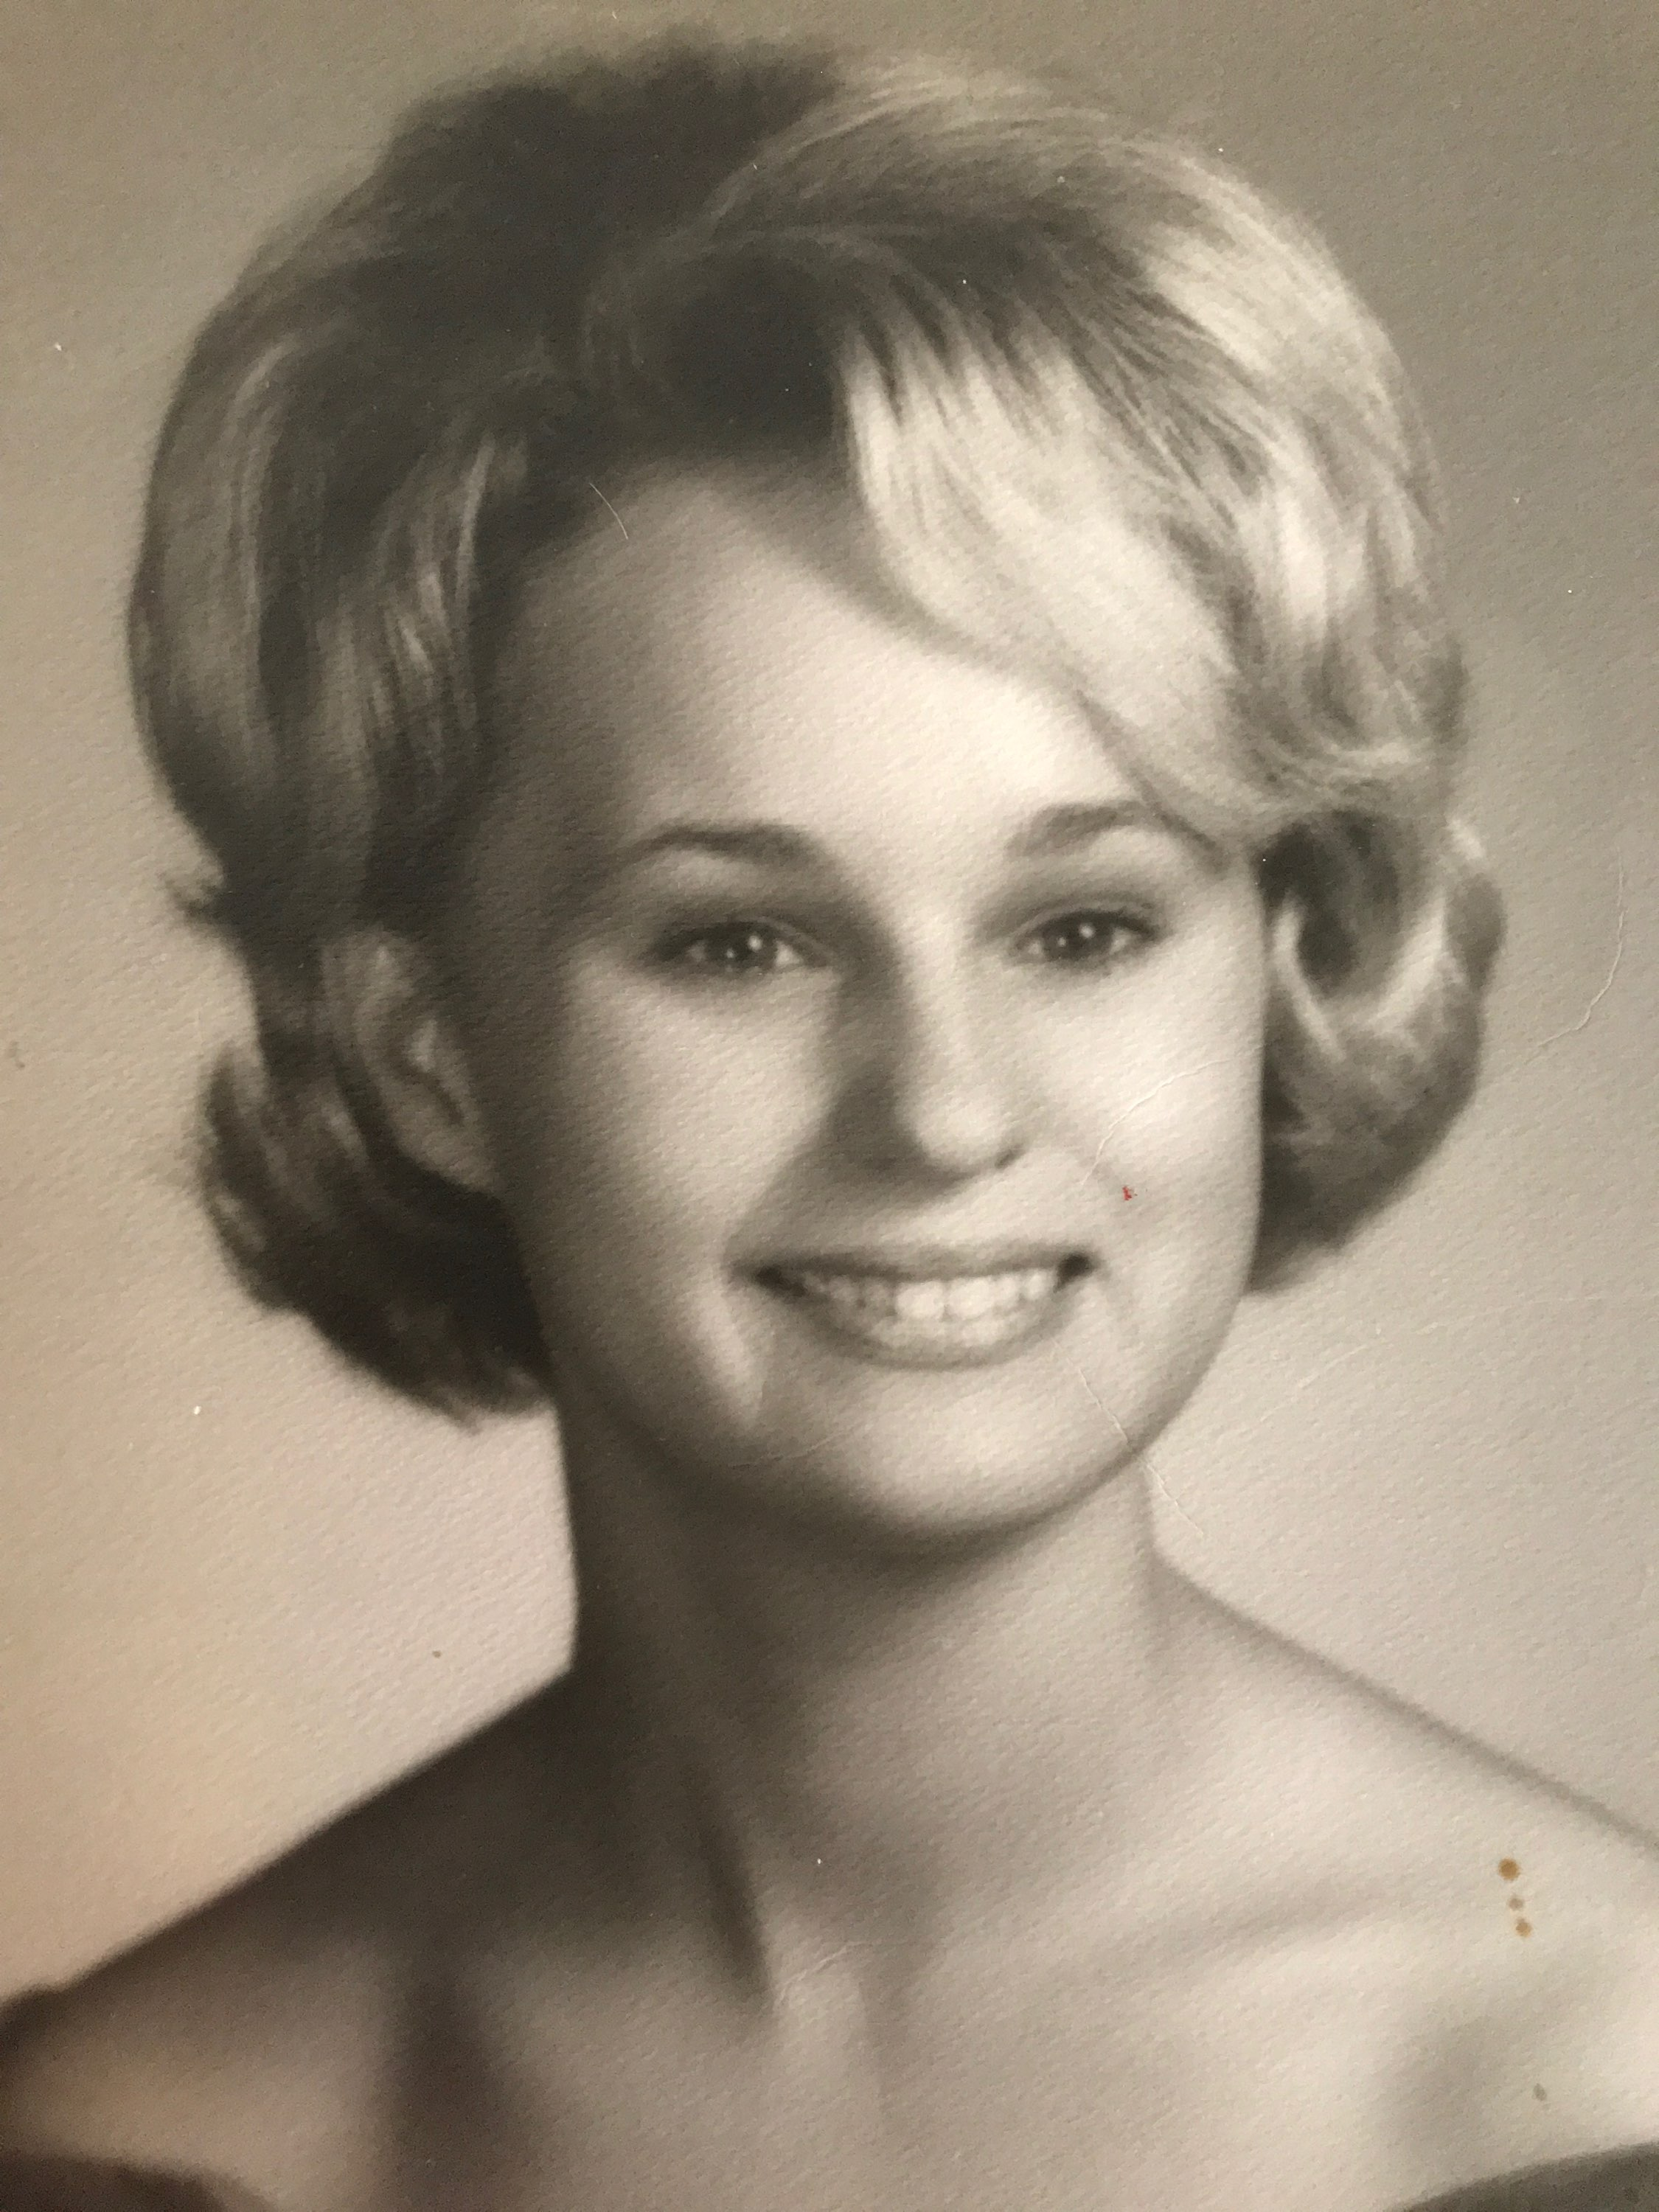 Obituary image of Rhonda Sanders